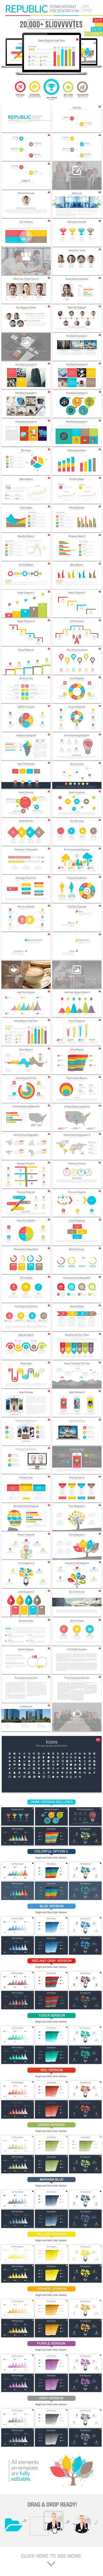 GraphicRiver Republic Multipurpose PowerPoint Template 9688935